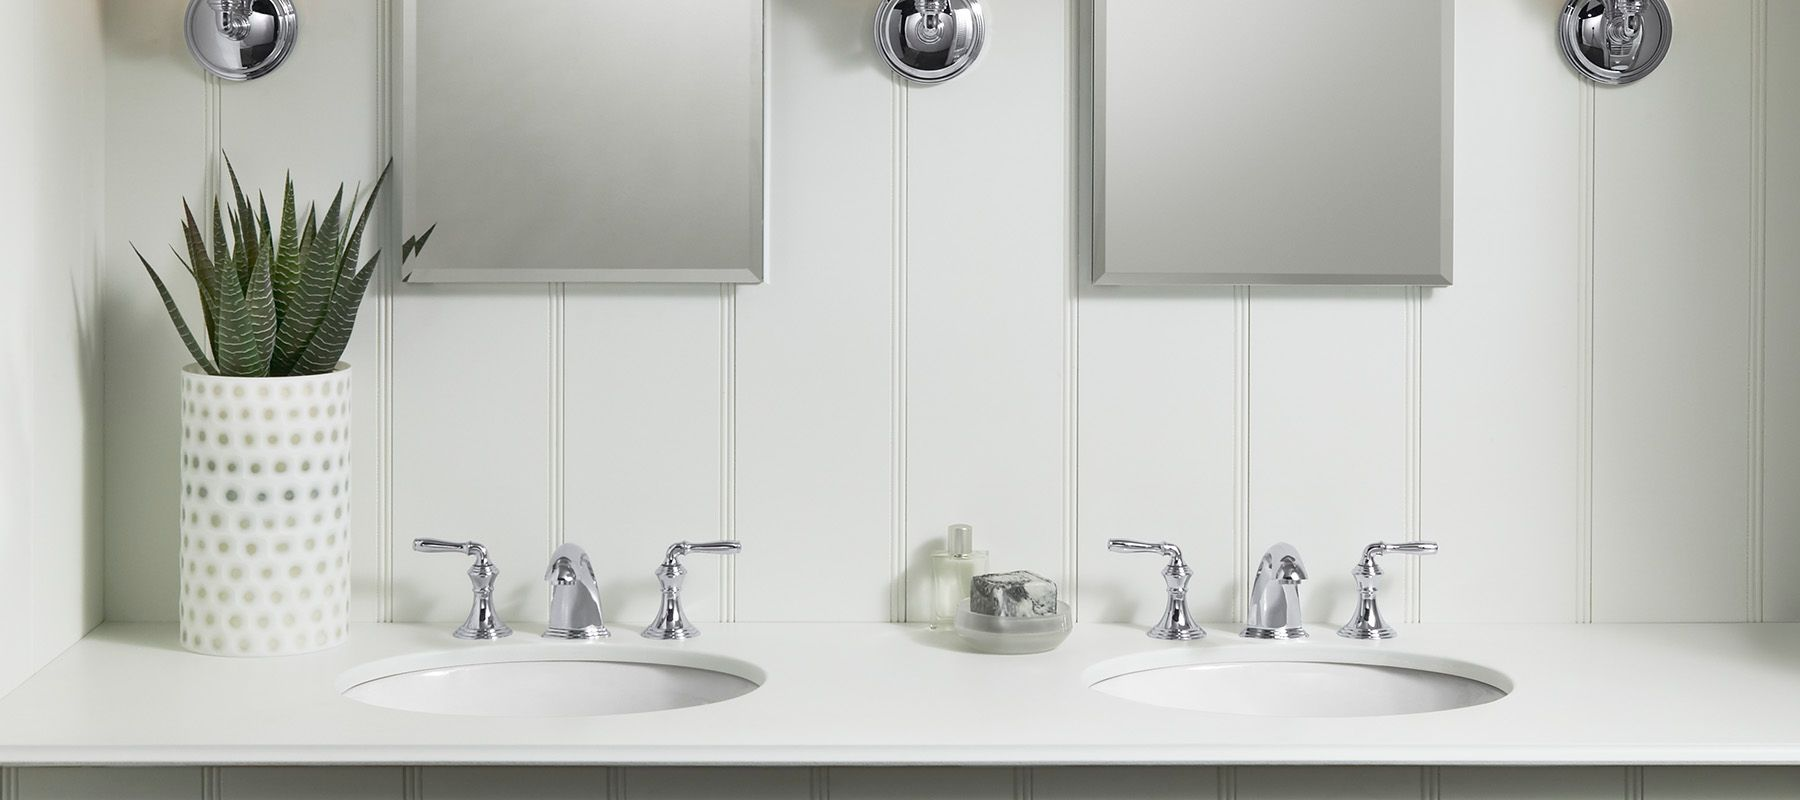 bathroom sinks buying guide - Small Bathroom Sinks